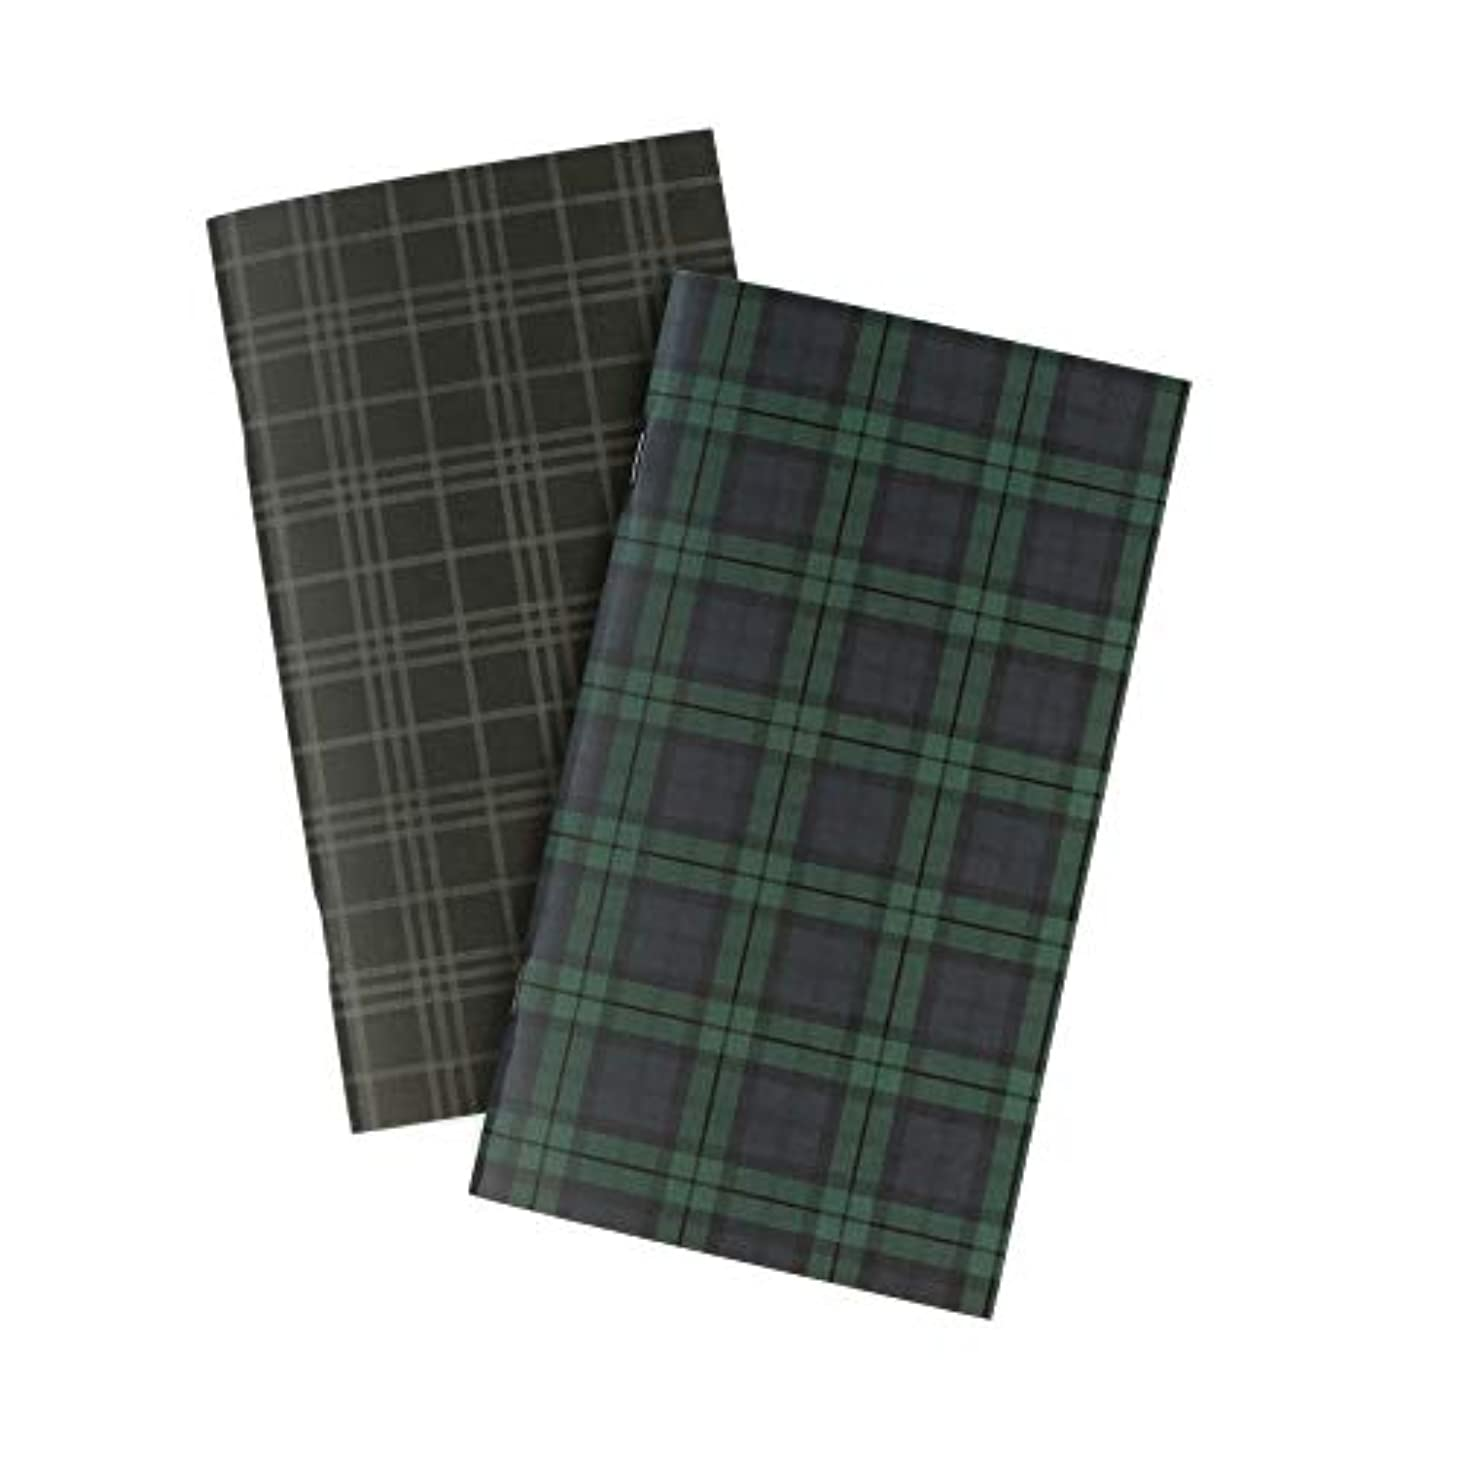 Echo Park Paper Company TNBW1001 Black Watch Travelers Notebook Insert -Blank Paper, Green